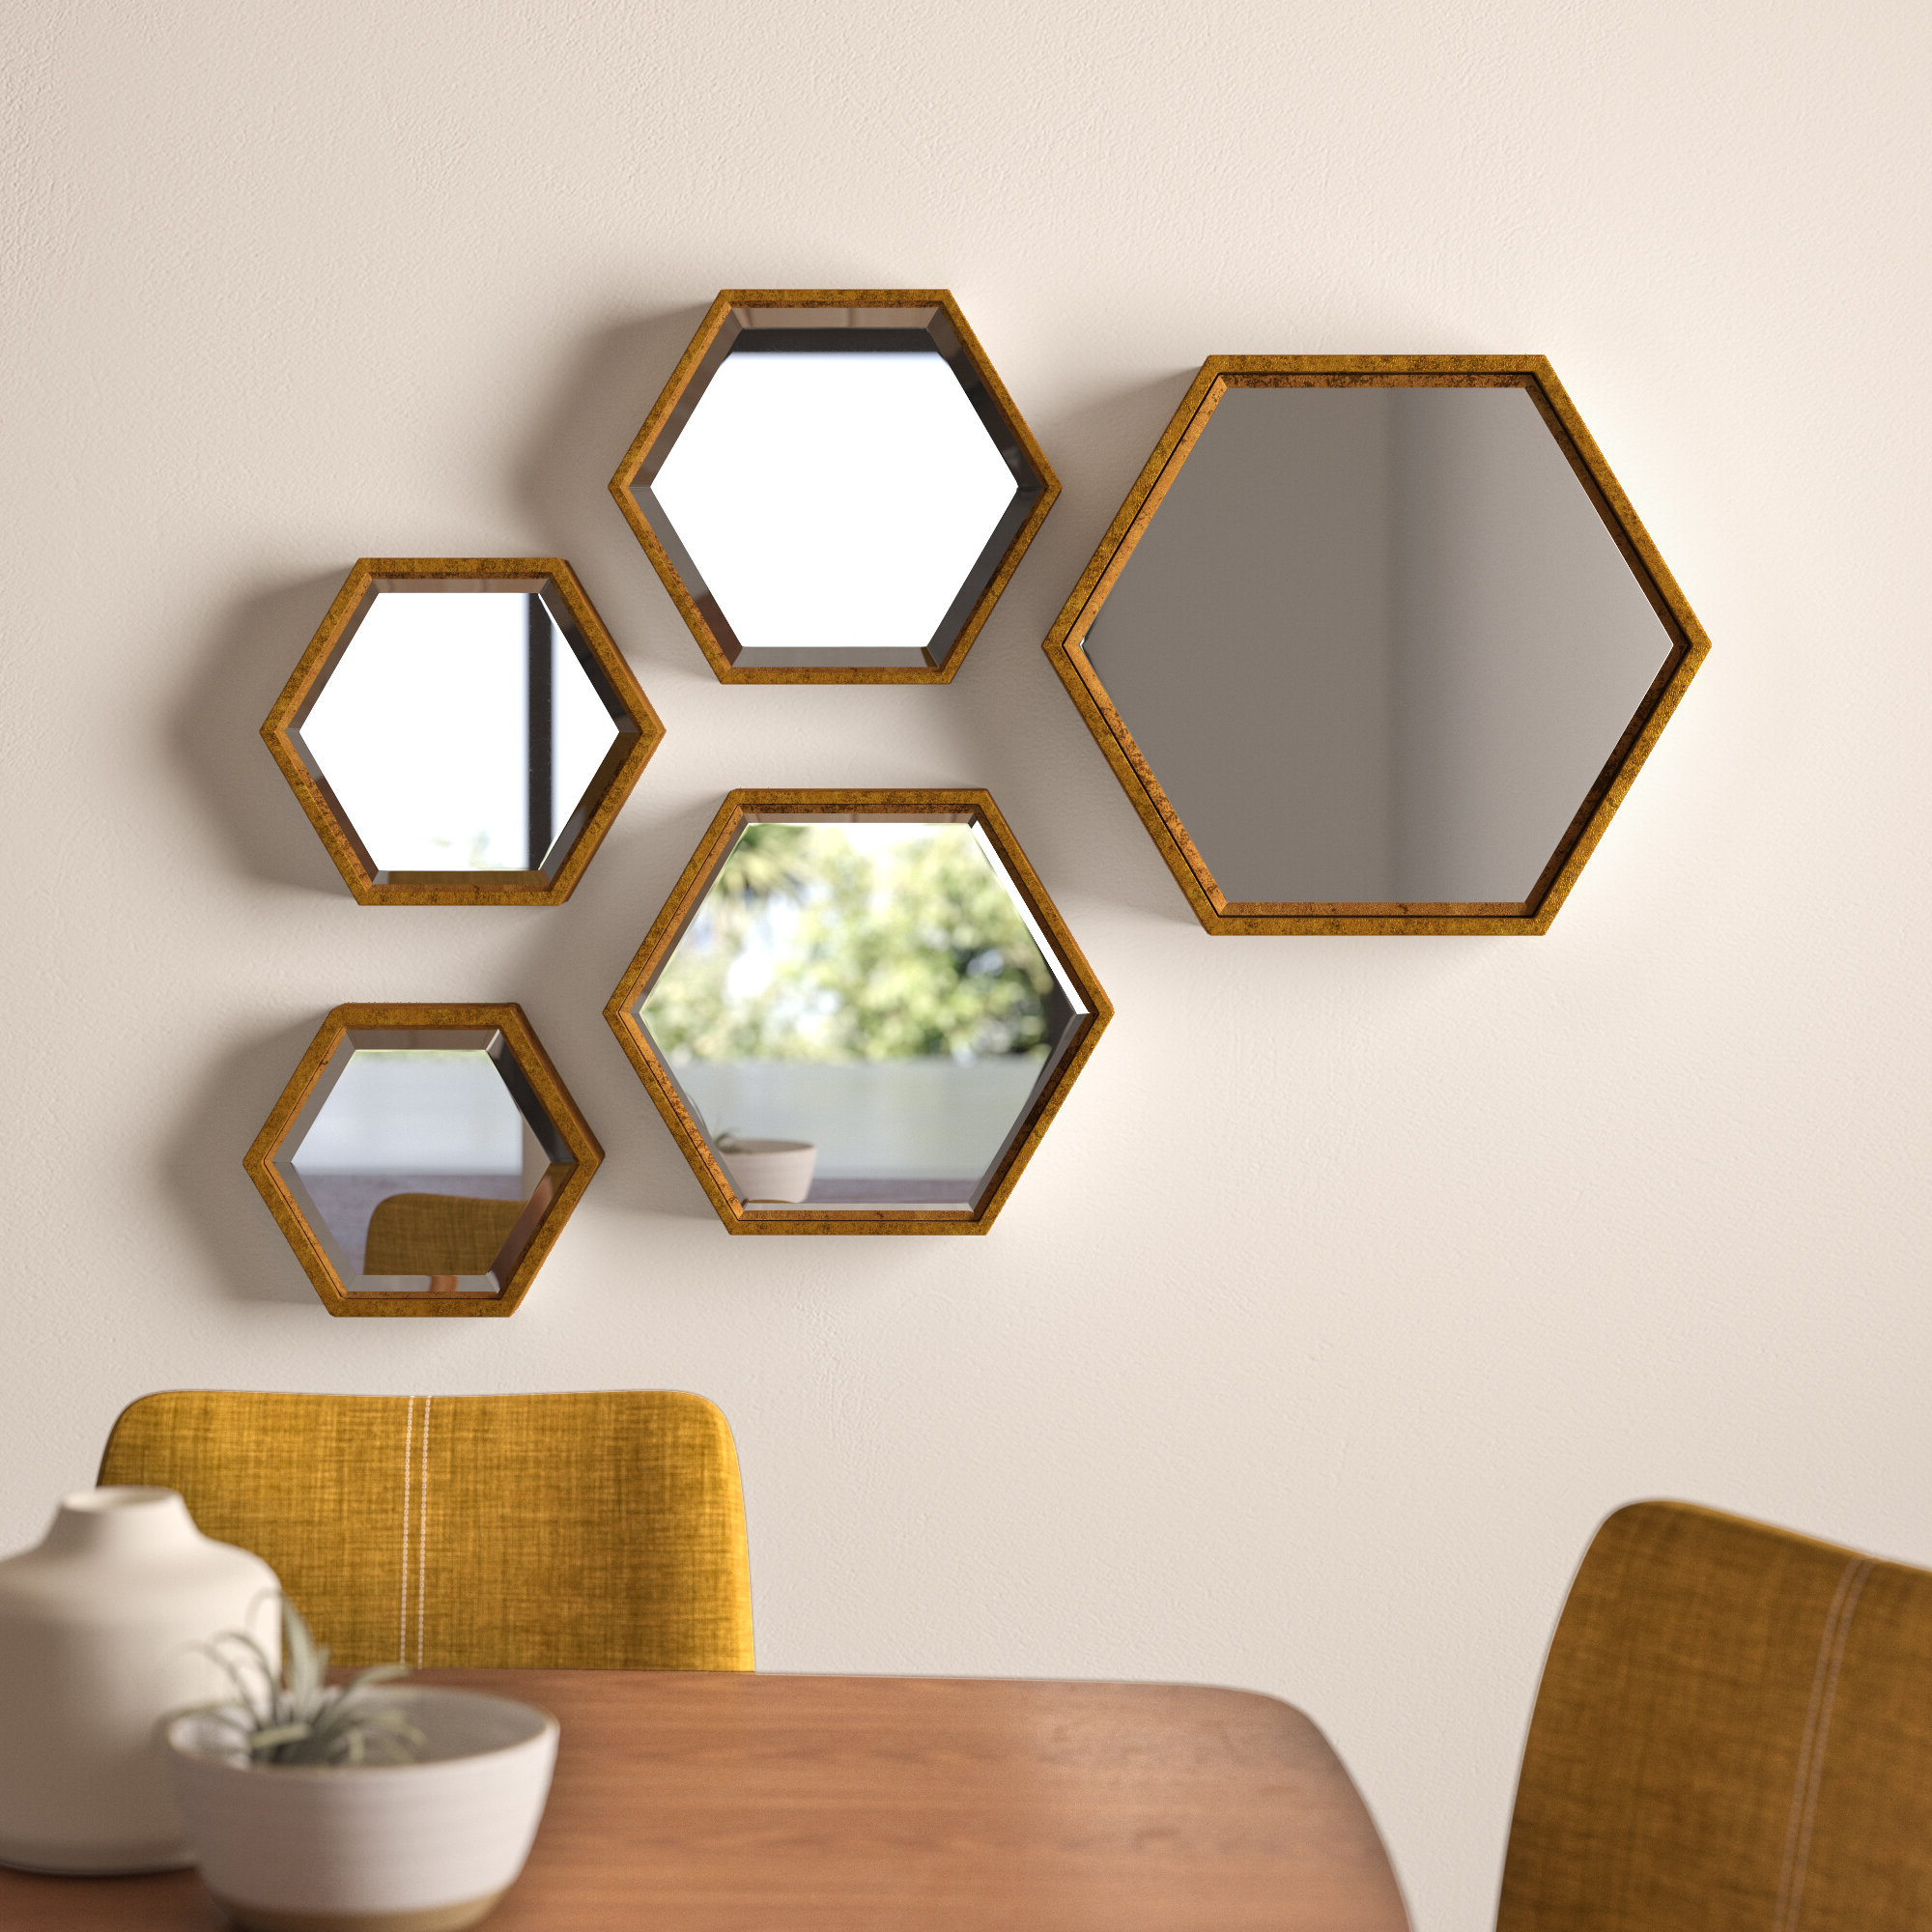 5 Piece Ashford Hexagonal Mirror Set Intended For Popular Gia Hexagon Accent Mirrors (View 2 of 20)